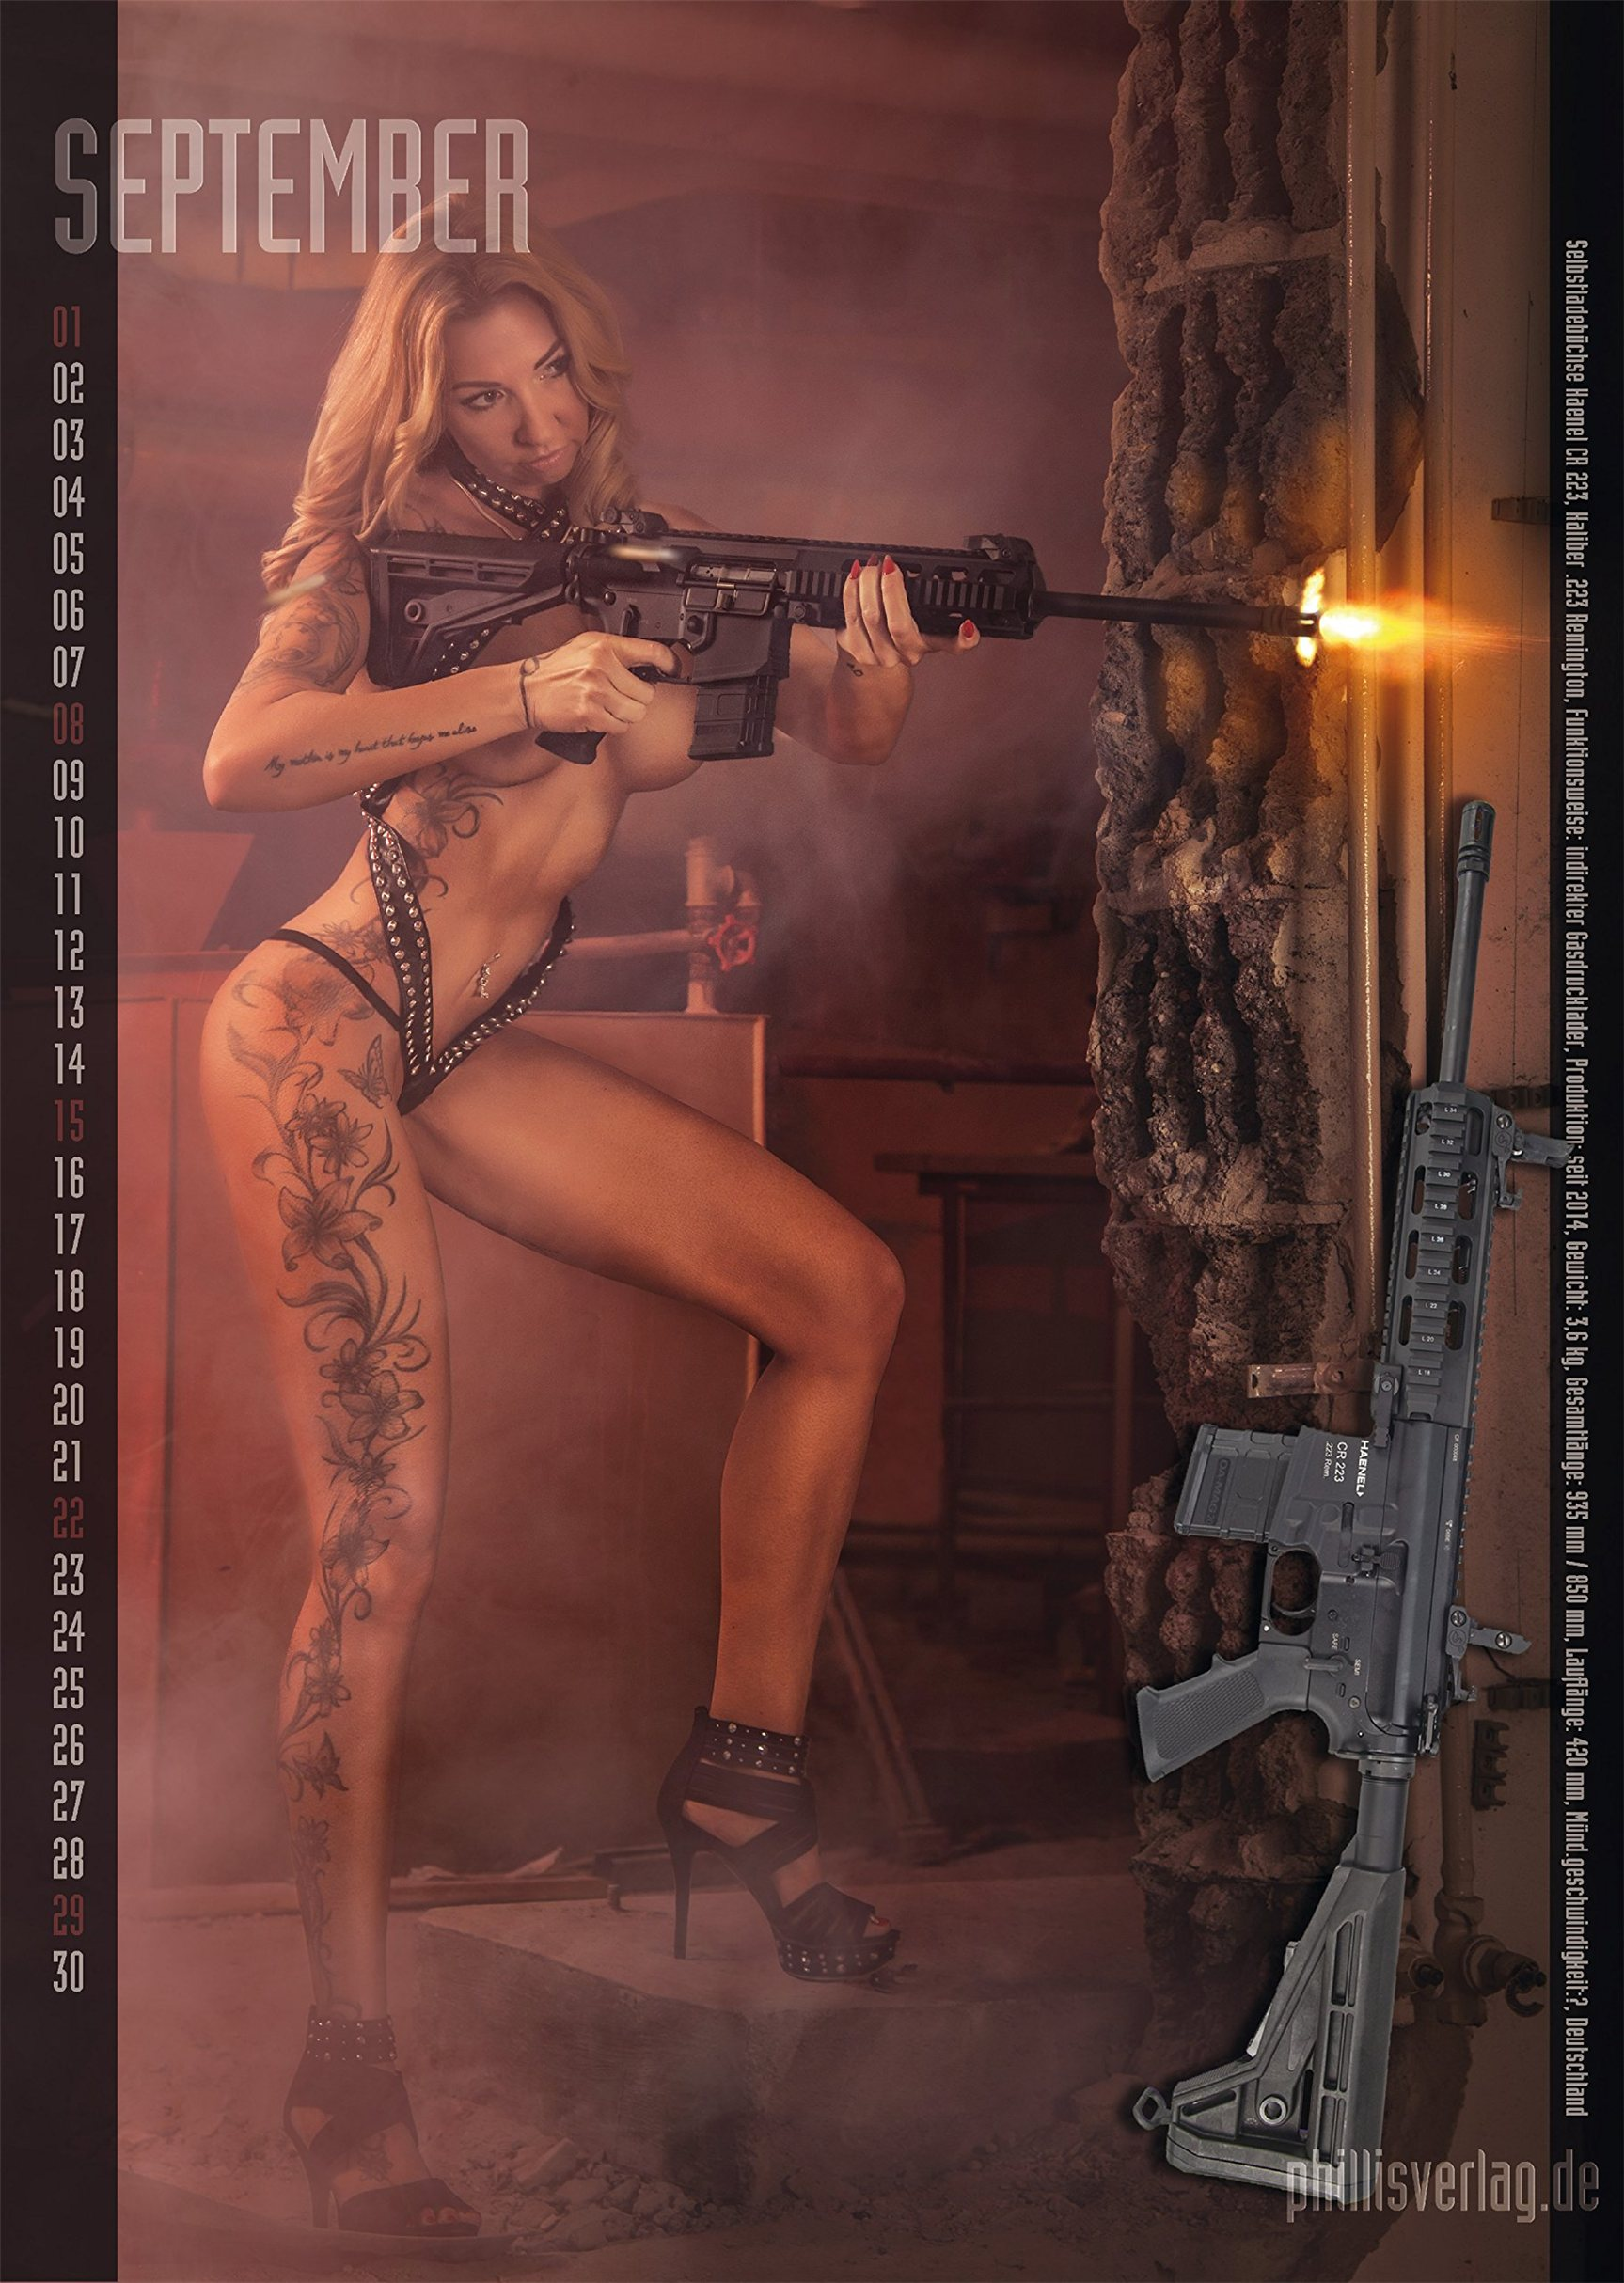 Girls and Guns / 2019 calendar by Jorg Neubert - сентябрь